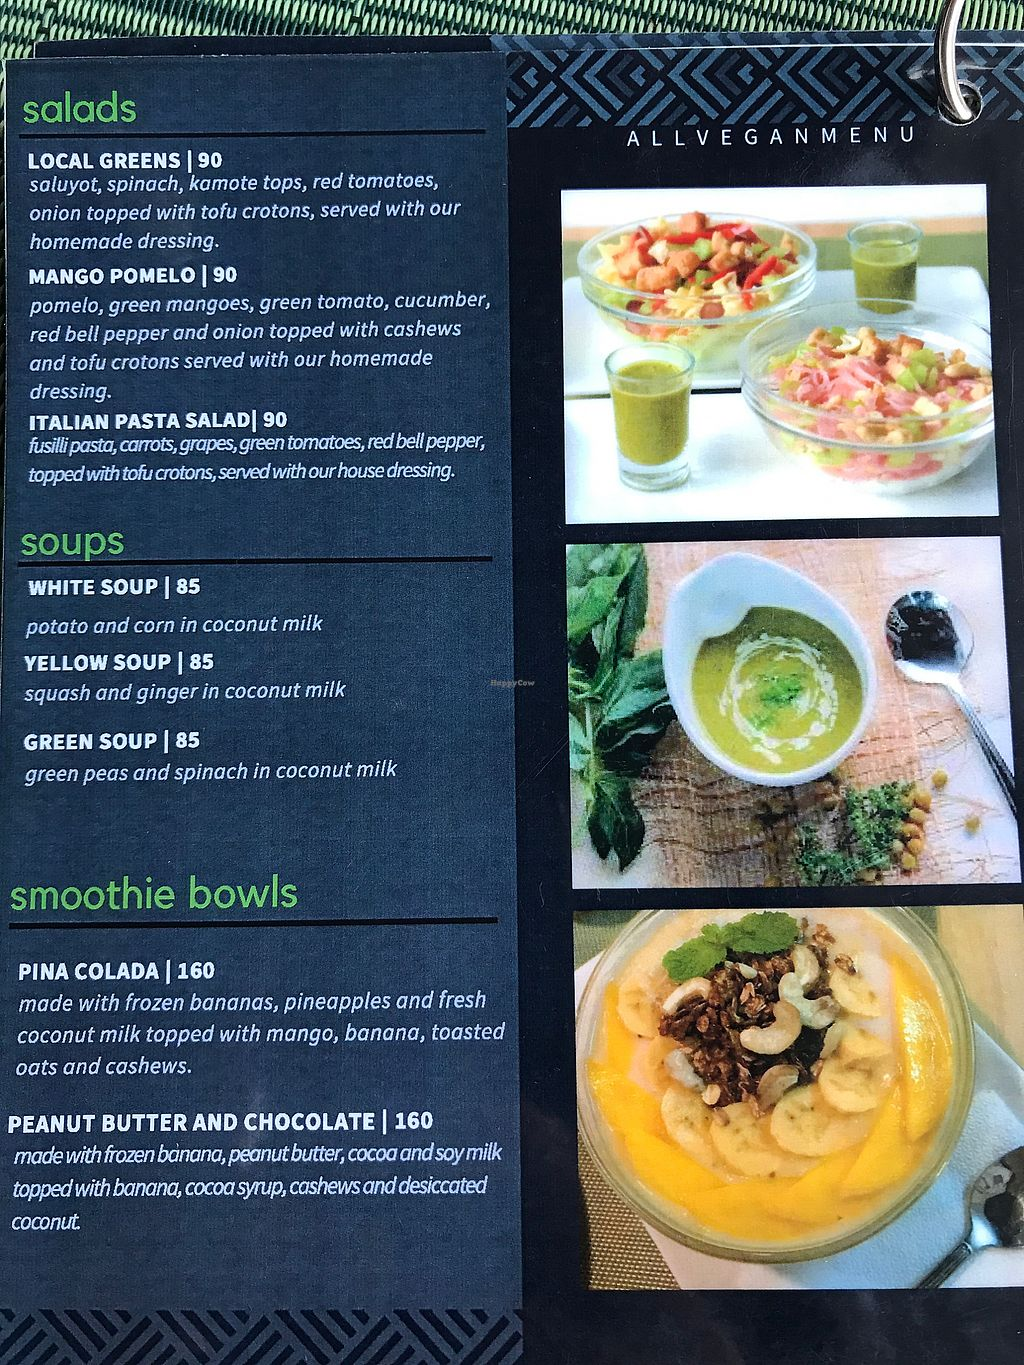 """Photo of Lun-Haw Vegan Cafe  by <a href=""""/members/profile/CharlieDrew"""">CharlieDrew</a> <br/>Menu Page 2 <br/> February 18, 2018  - <a href='/contact/abuse/image/86953/360756'>Report</a>"""